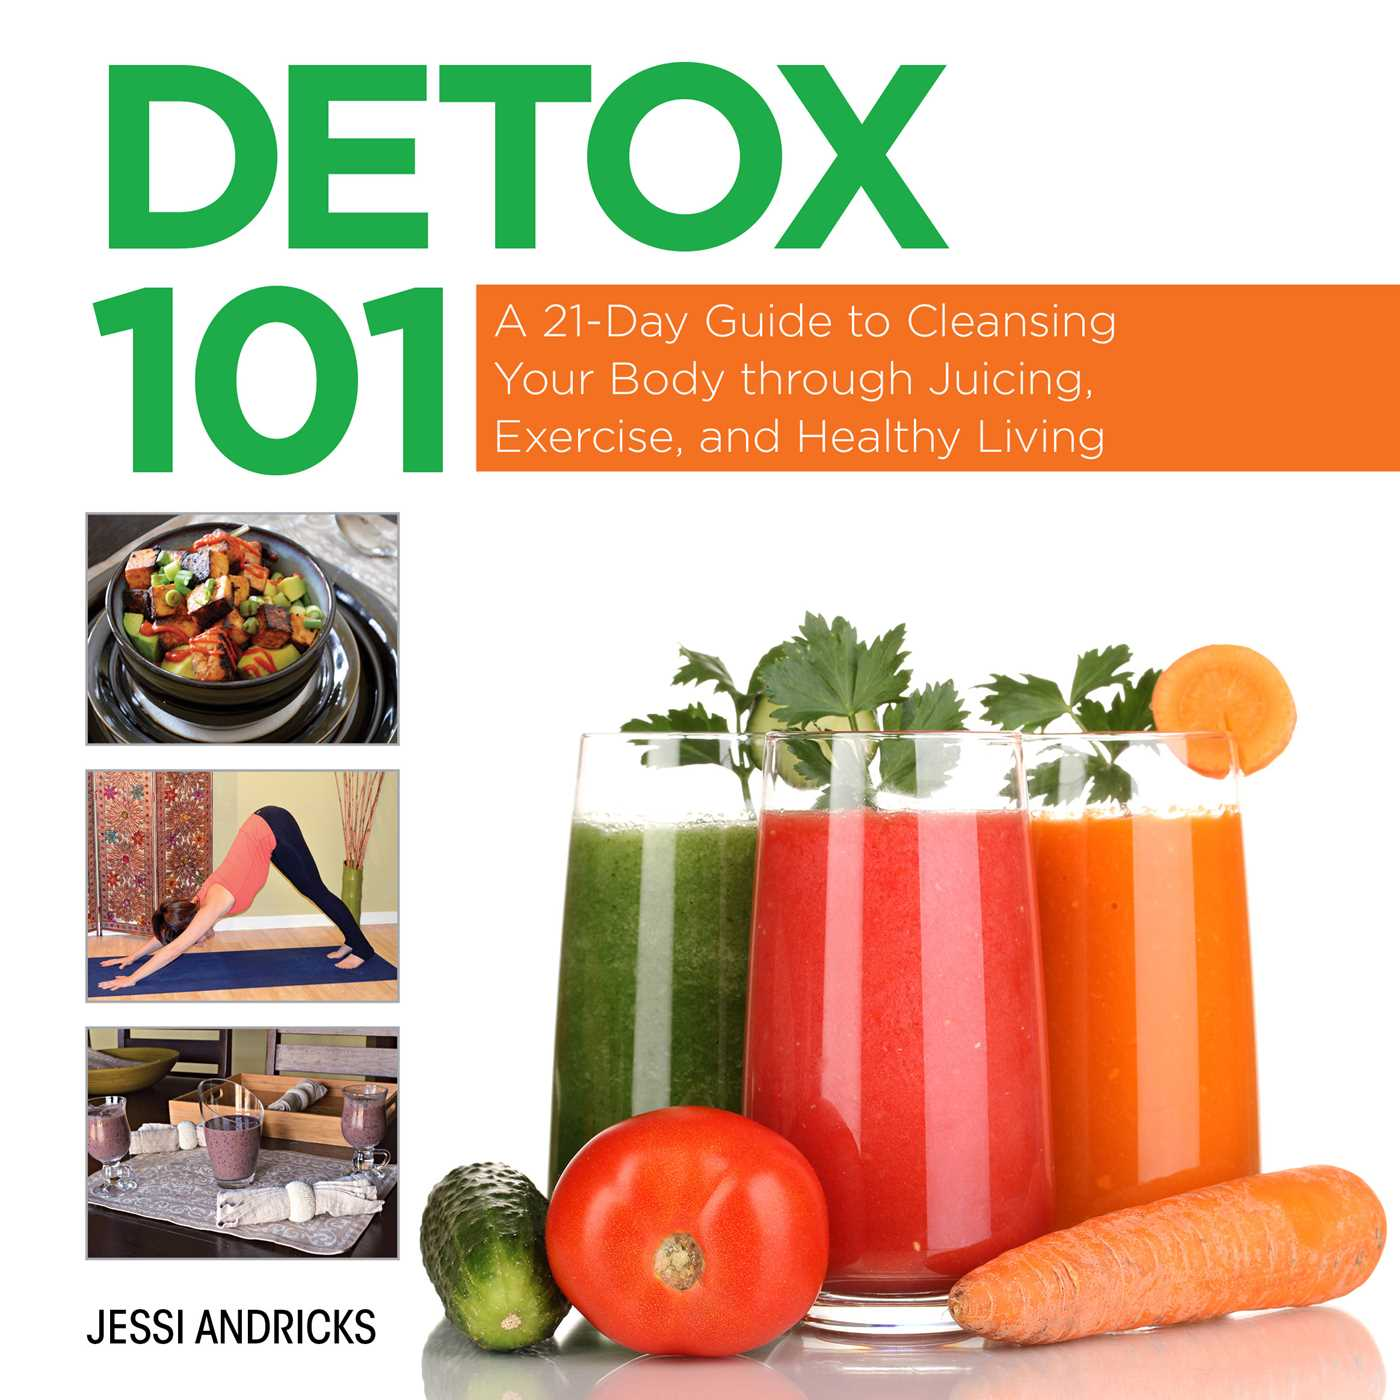 Detox 101: The What, The Why, The How